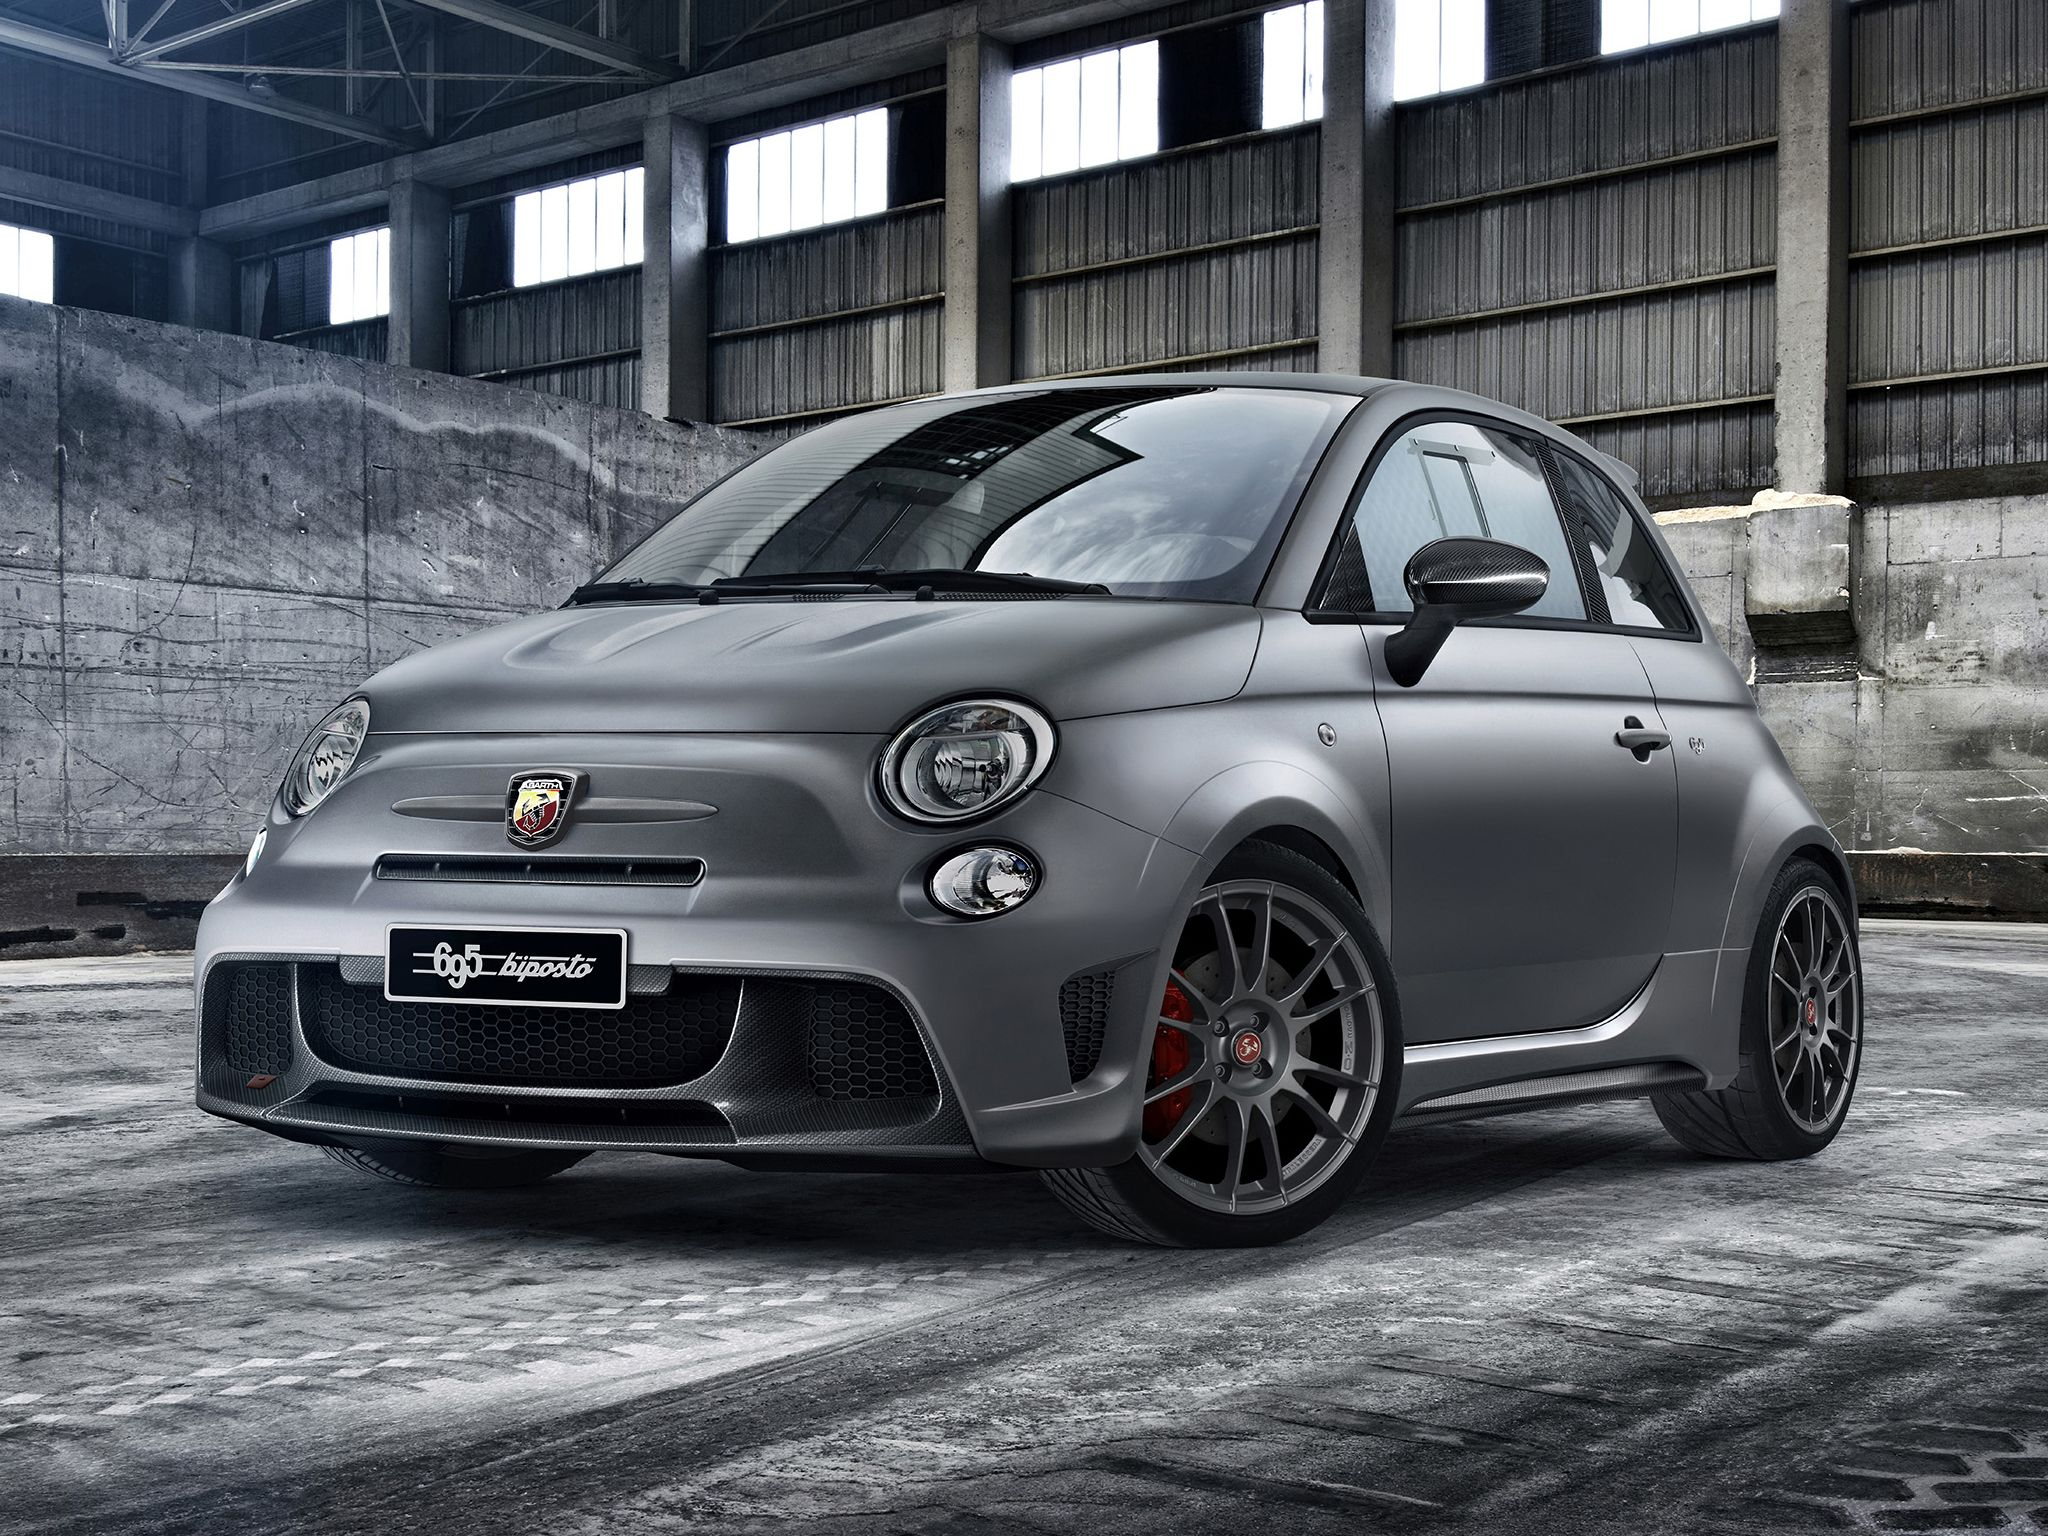 Fiart 500 Abarth 695 Biposto Cars Pinterest